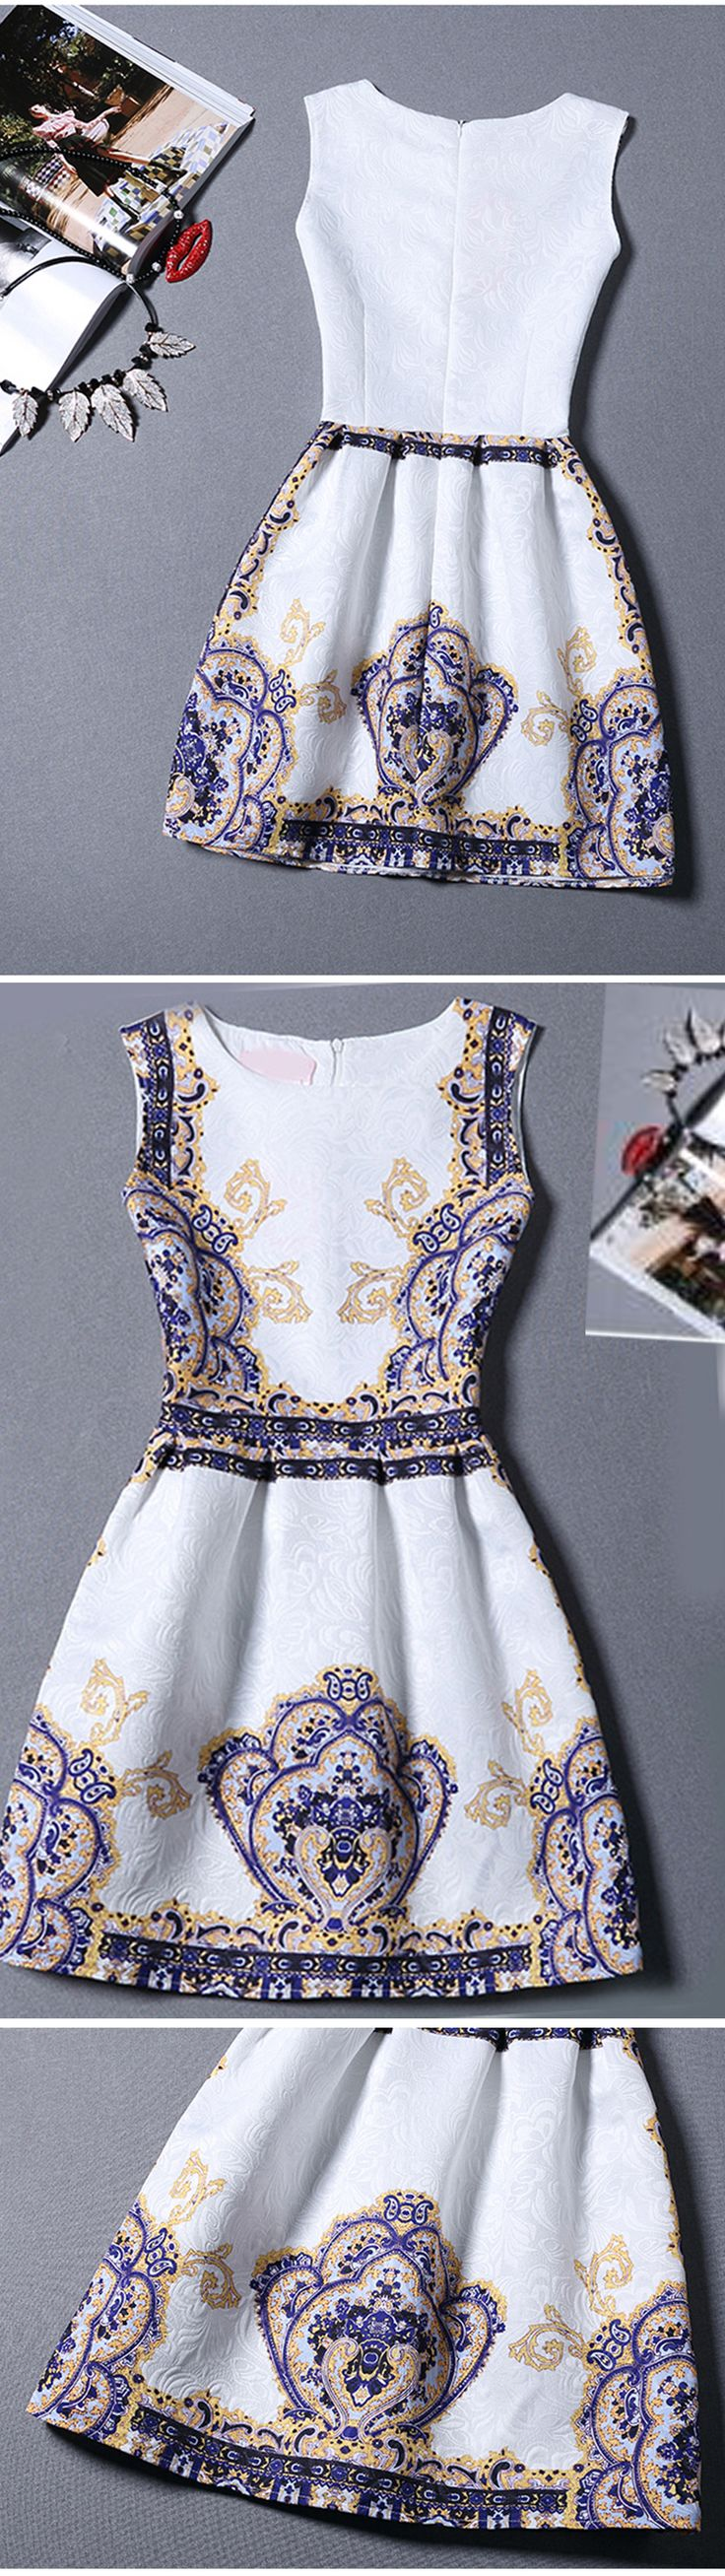 Multicolor Sleeveless Vintage Print Jacquard Dress. Women trendy this year. Really great dress for dress up or down. US$11.99 .Click to sign up for 60% off 1st order.